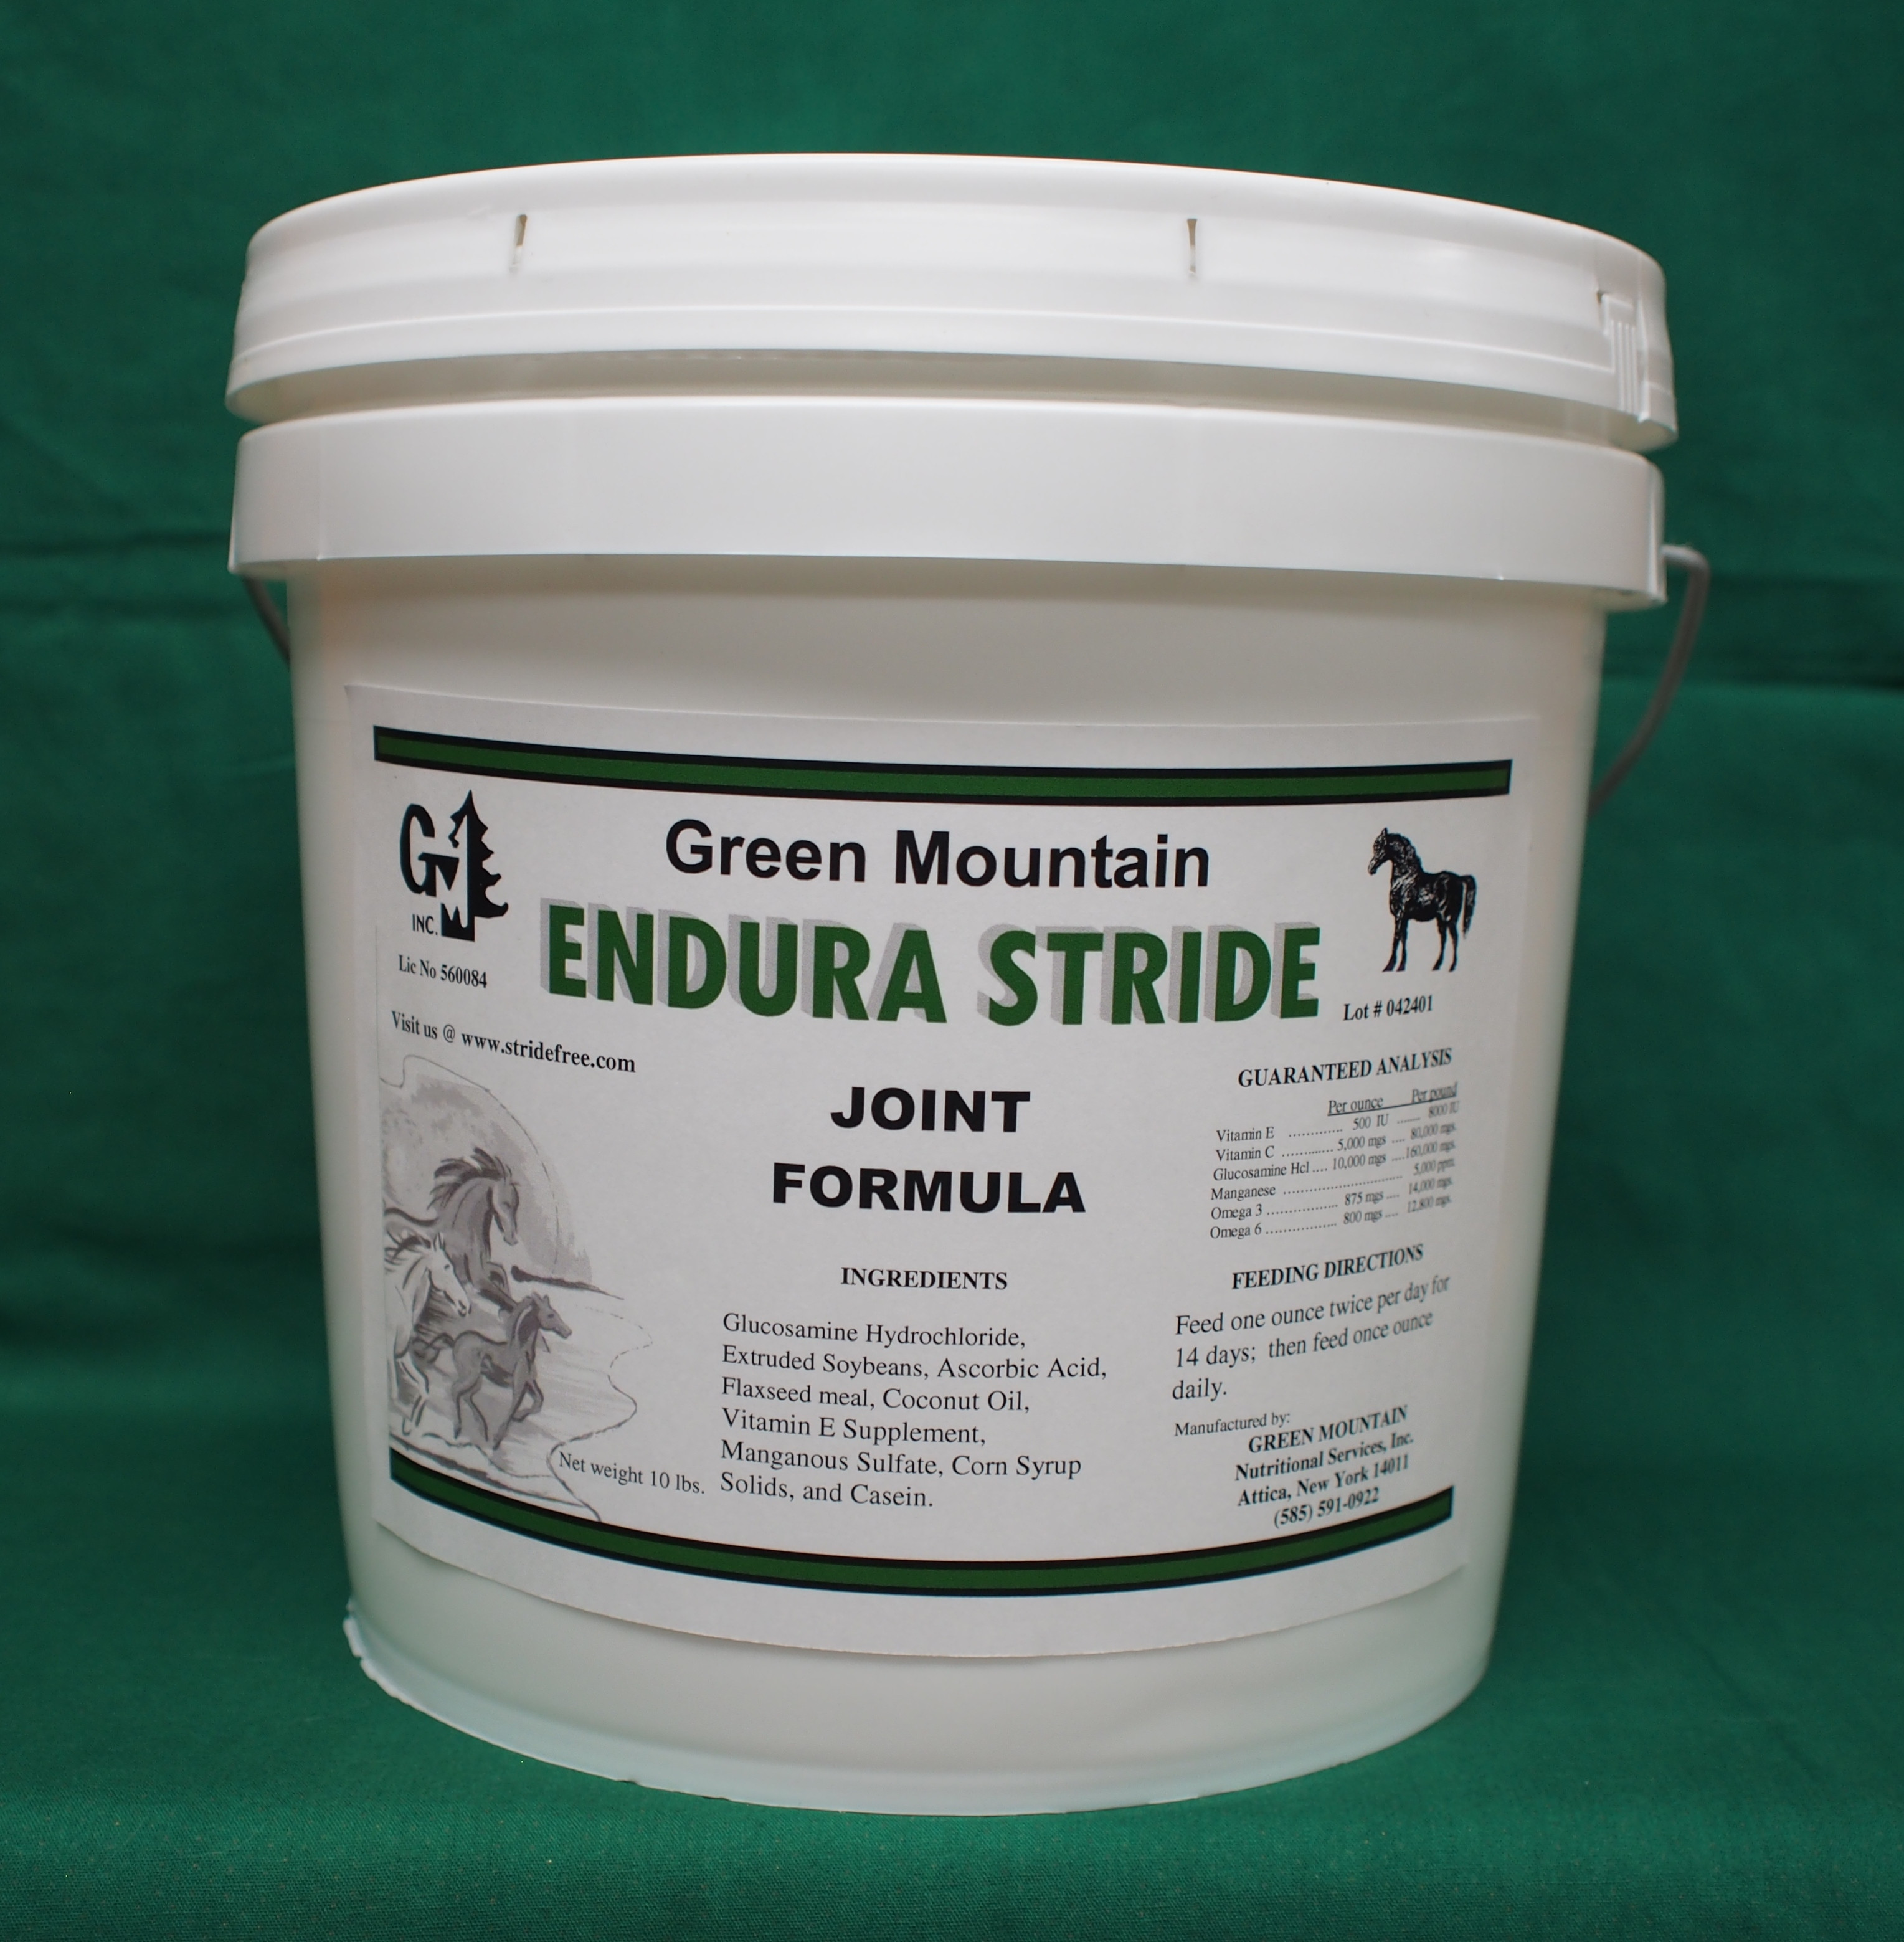 Endura Stride by Green Mountian Nutritional Services, Inc